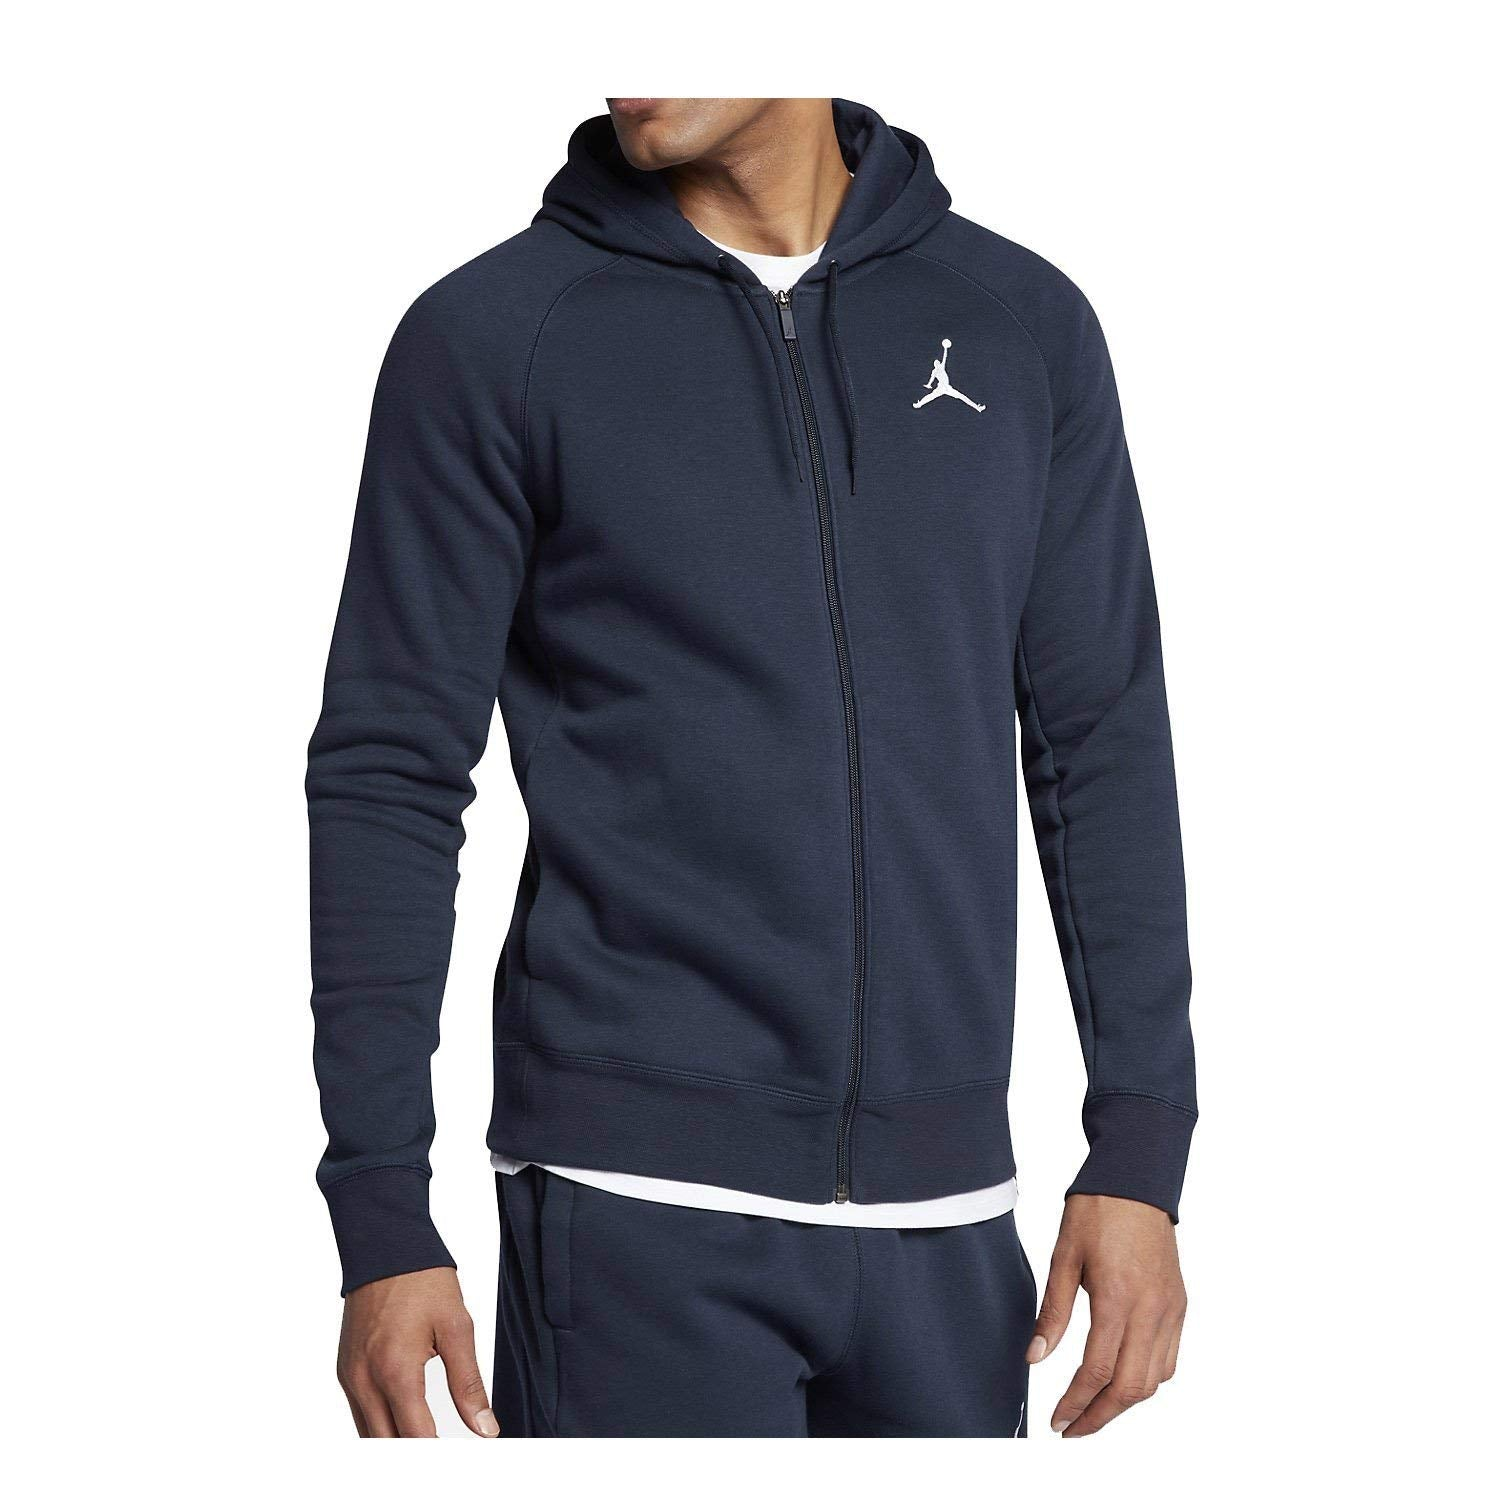 Nike Air Jordan Jumpman Full-Zip Fleece Men s Basketball Hoodie Jacket Size  2XL 70d70844aeb58